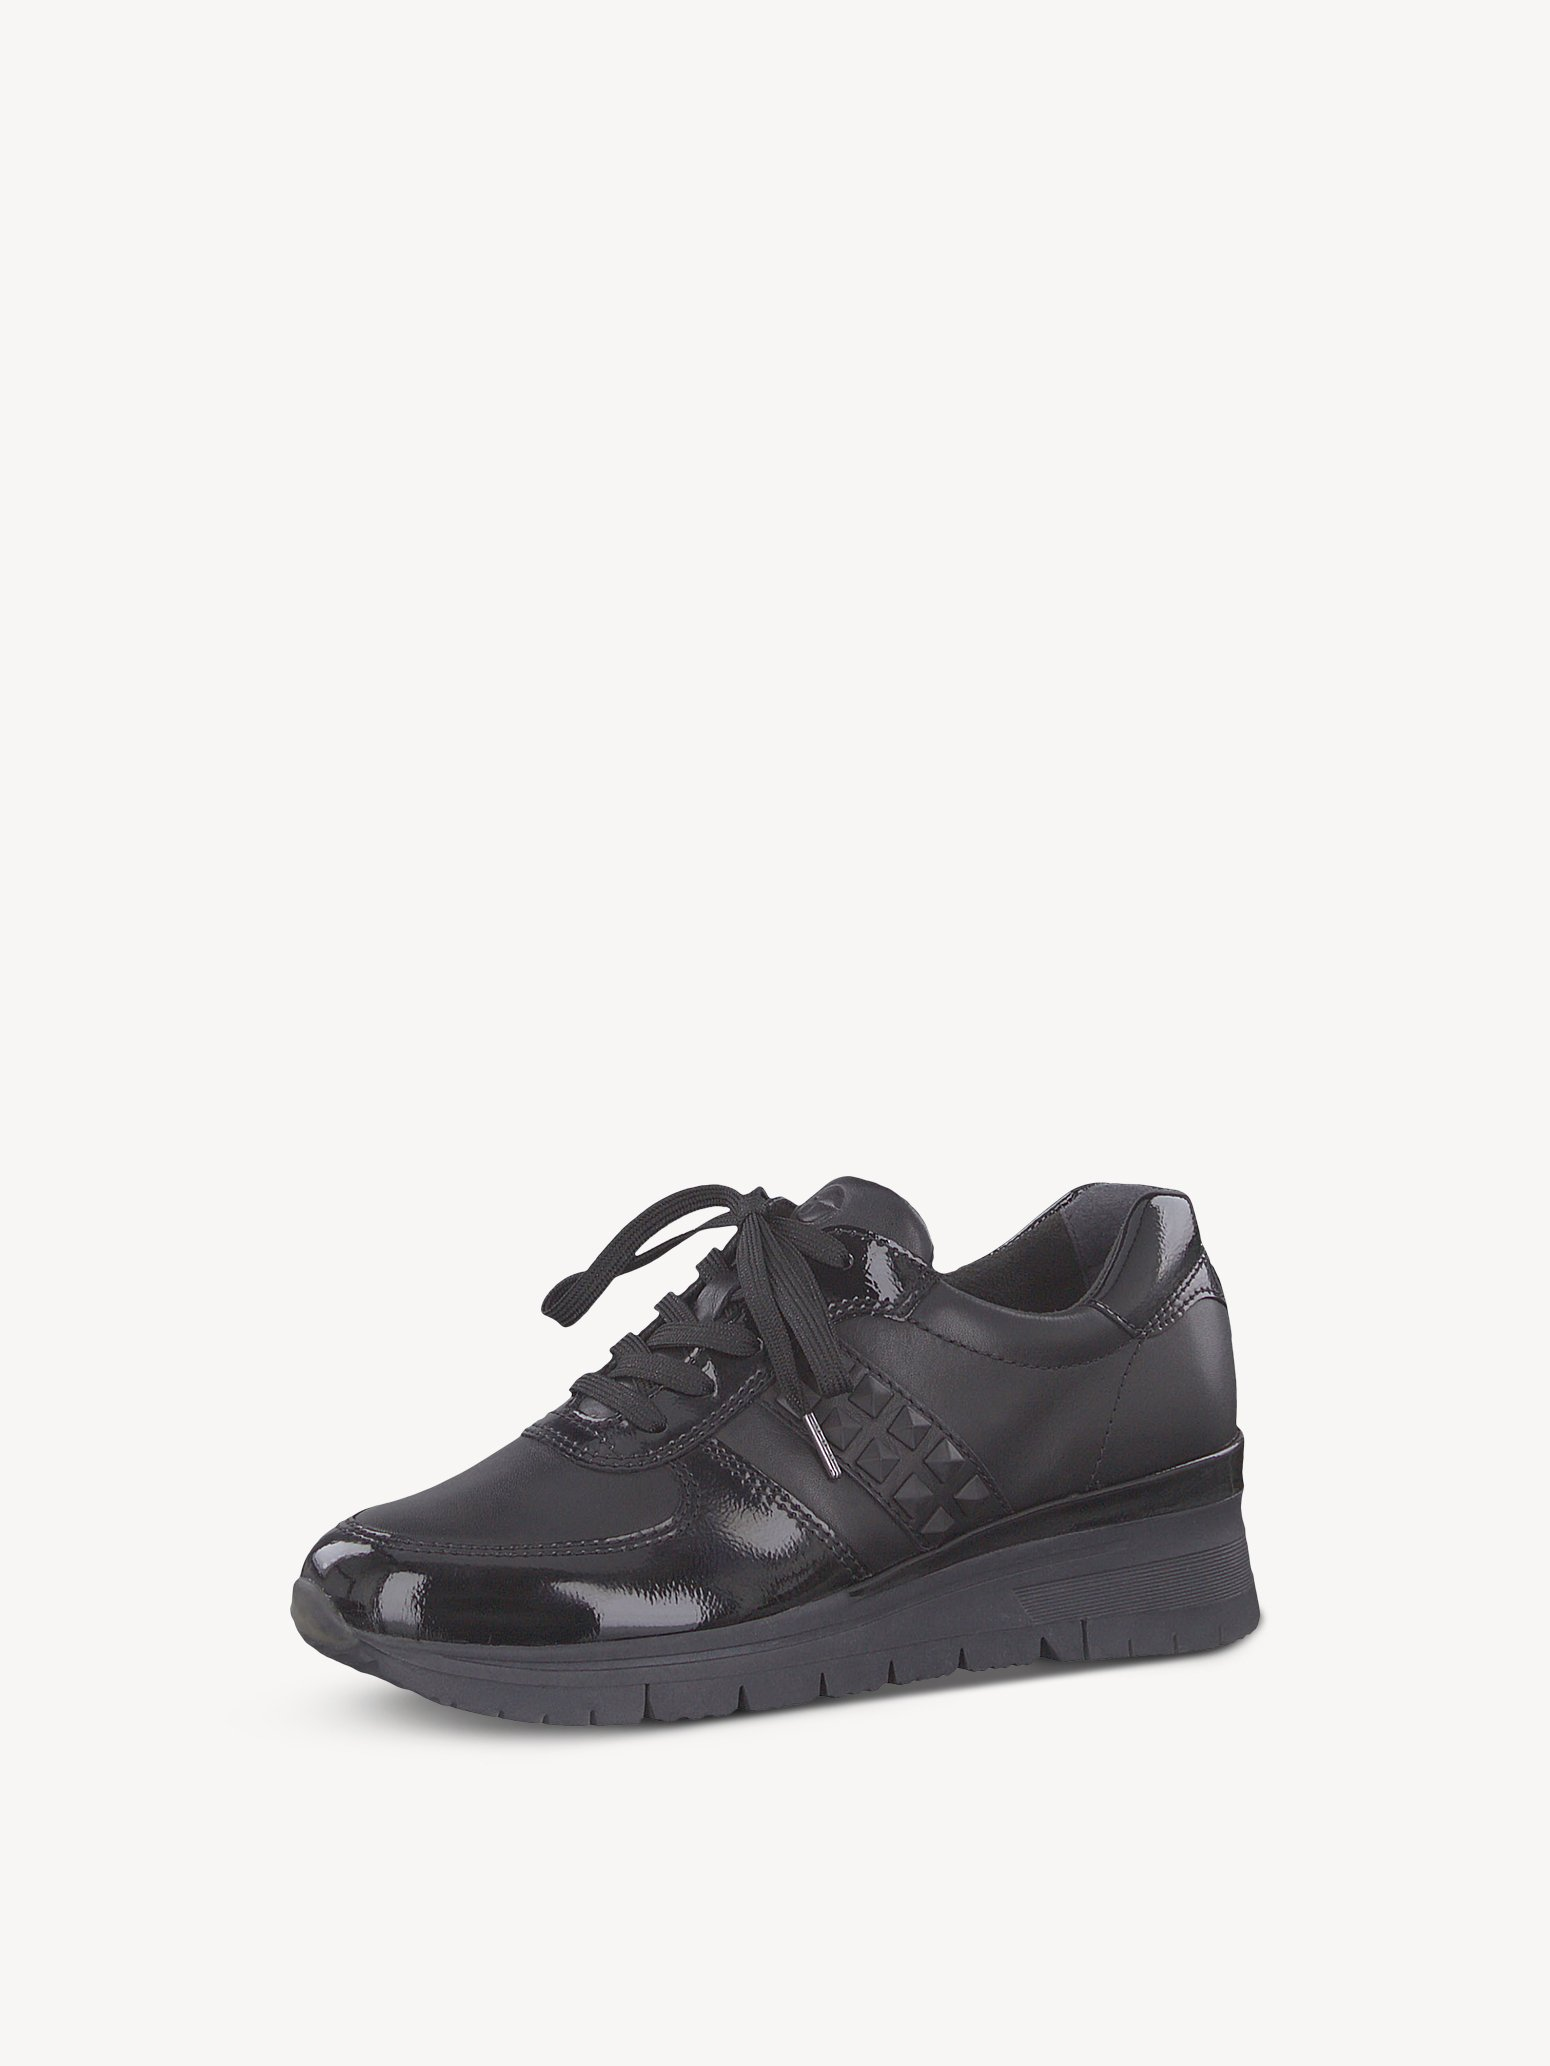 Leather Sneaker - black, BLK LEATH./PAT, hi-res